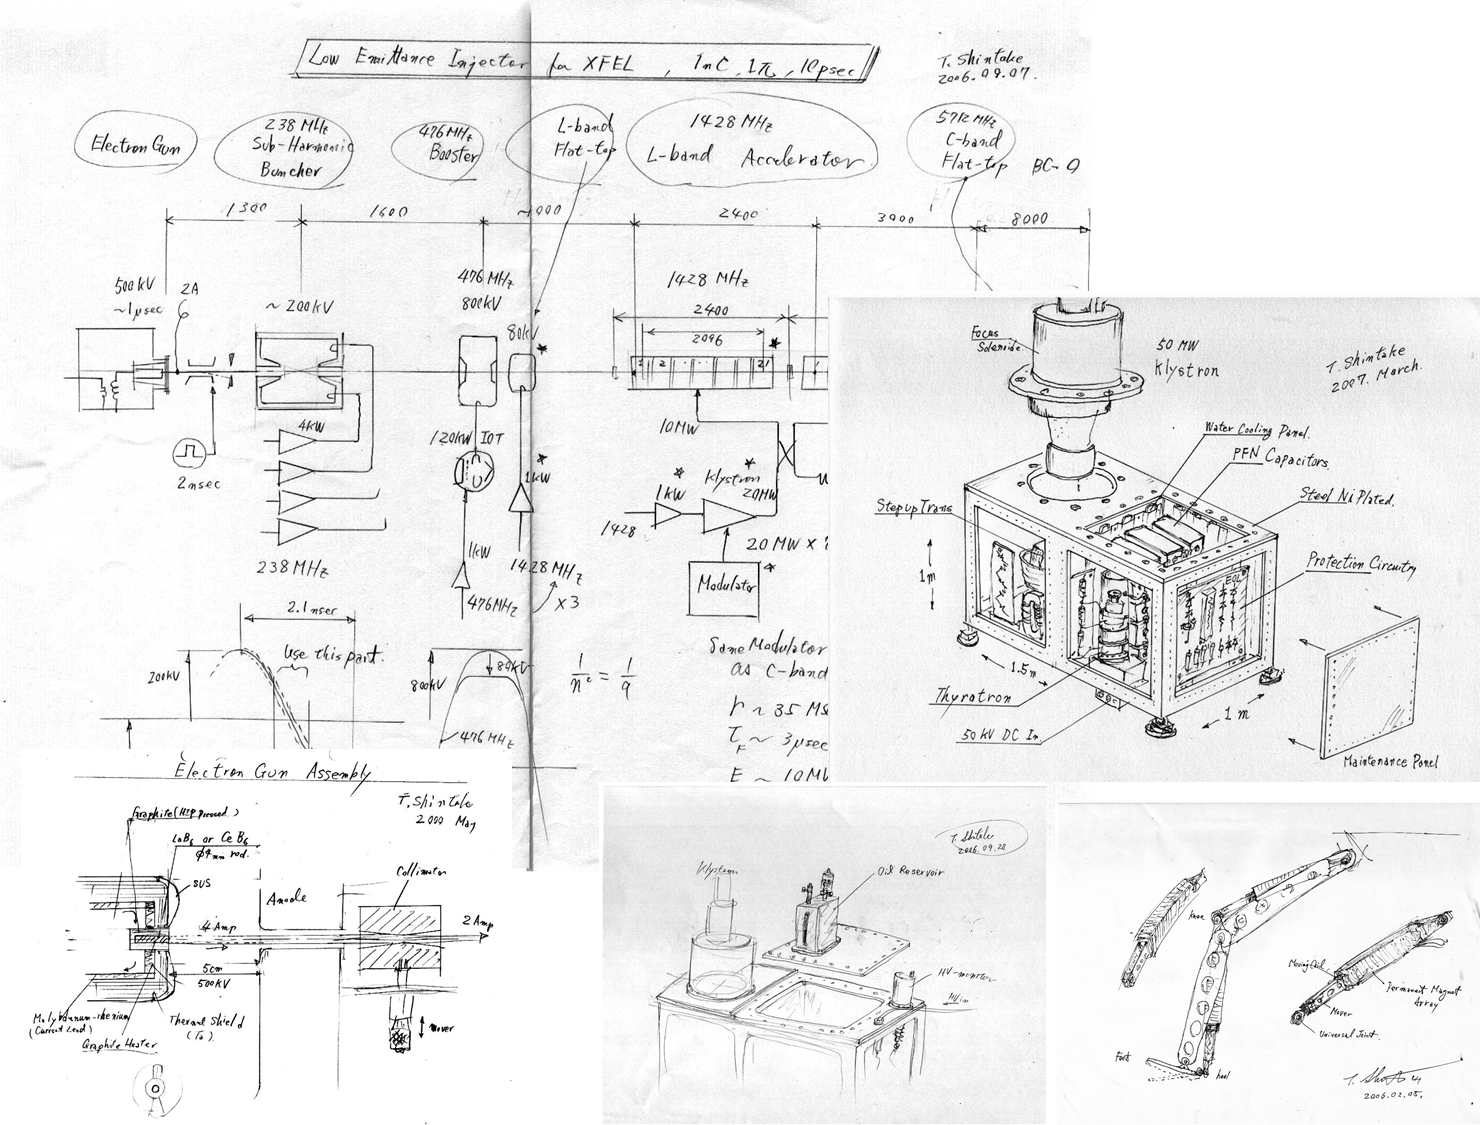 A design sketch of the C-Band linac by Prof. Shintake